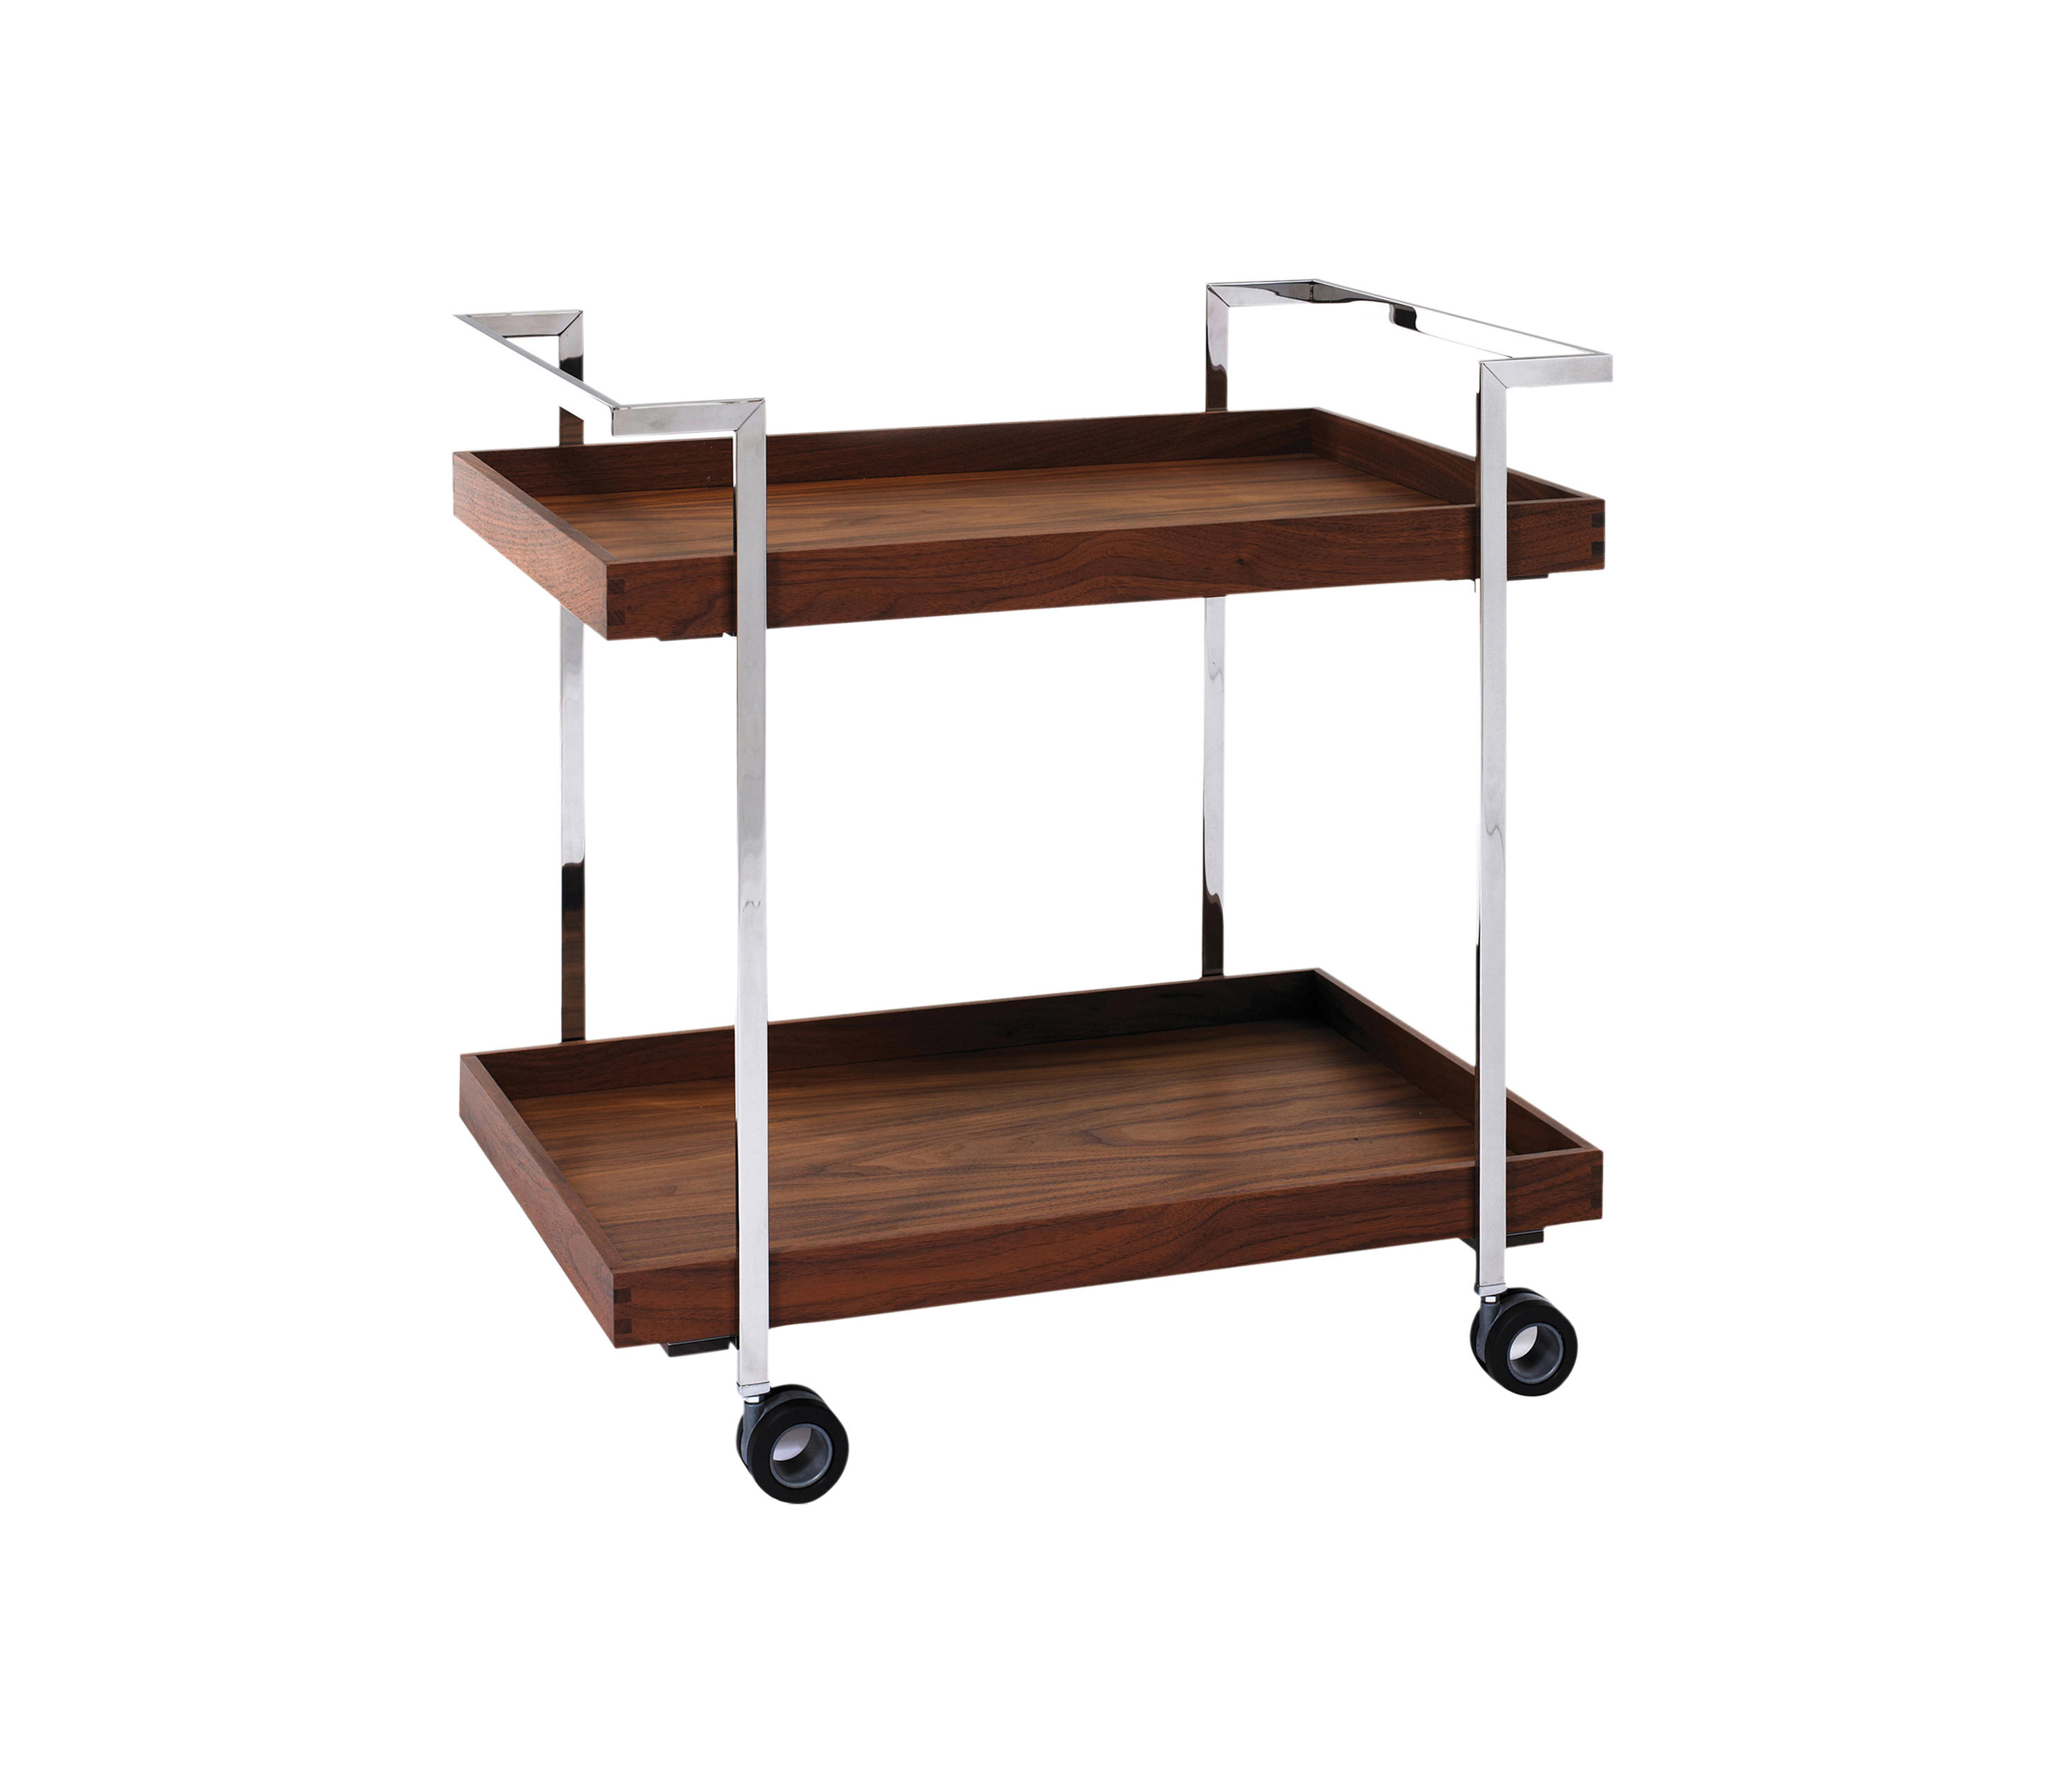 pioneer t63s tea trolley tea trolleys bar trolleys from ghyczy architonic. Black Bedroom Furniture Sets. Home Design Ideas